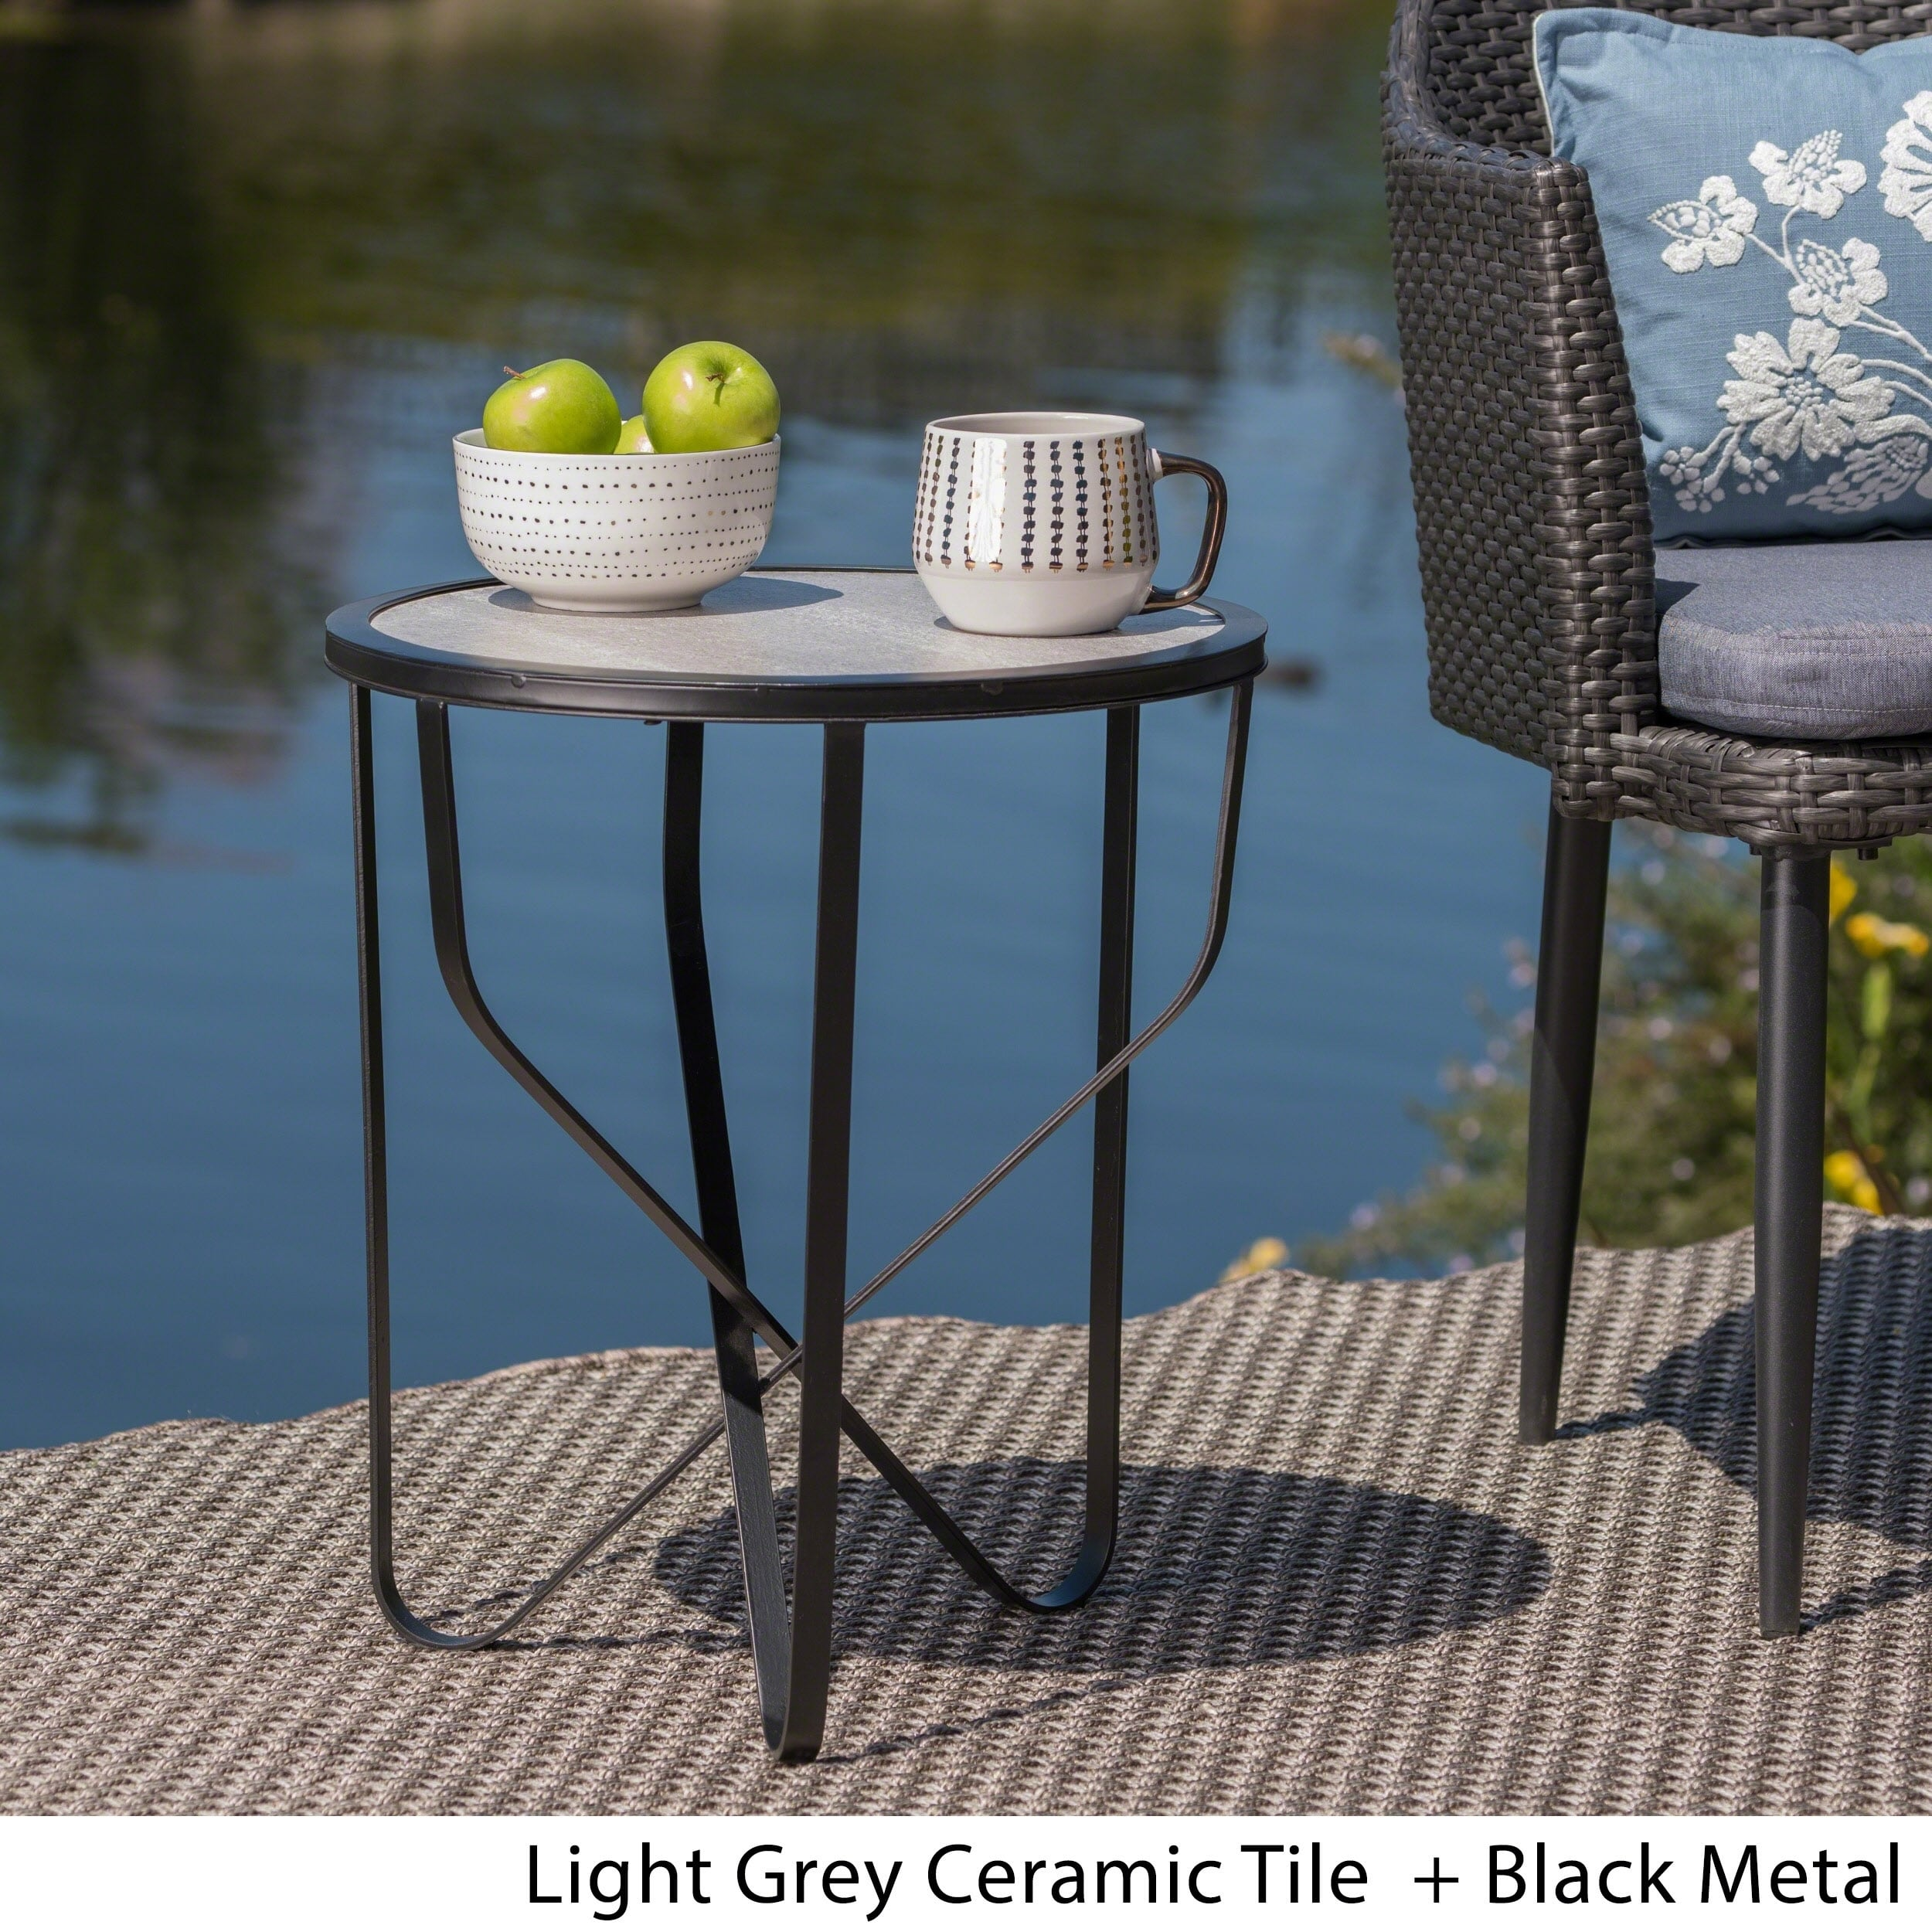 norfolk outdoor inch ceramic tile side table christopher knight home free shipping today mila square accent barn door ideas glass chairside mirrored cube coffee cool nightstands